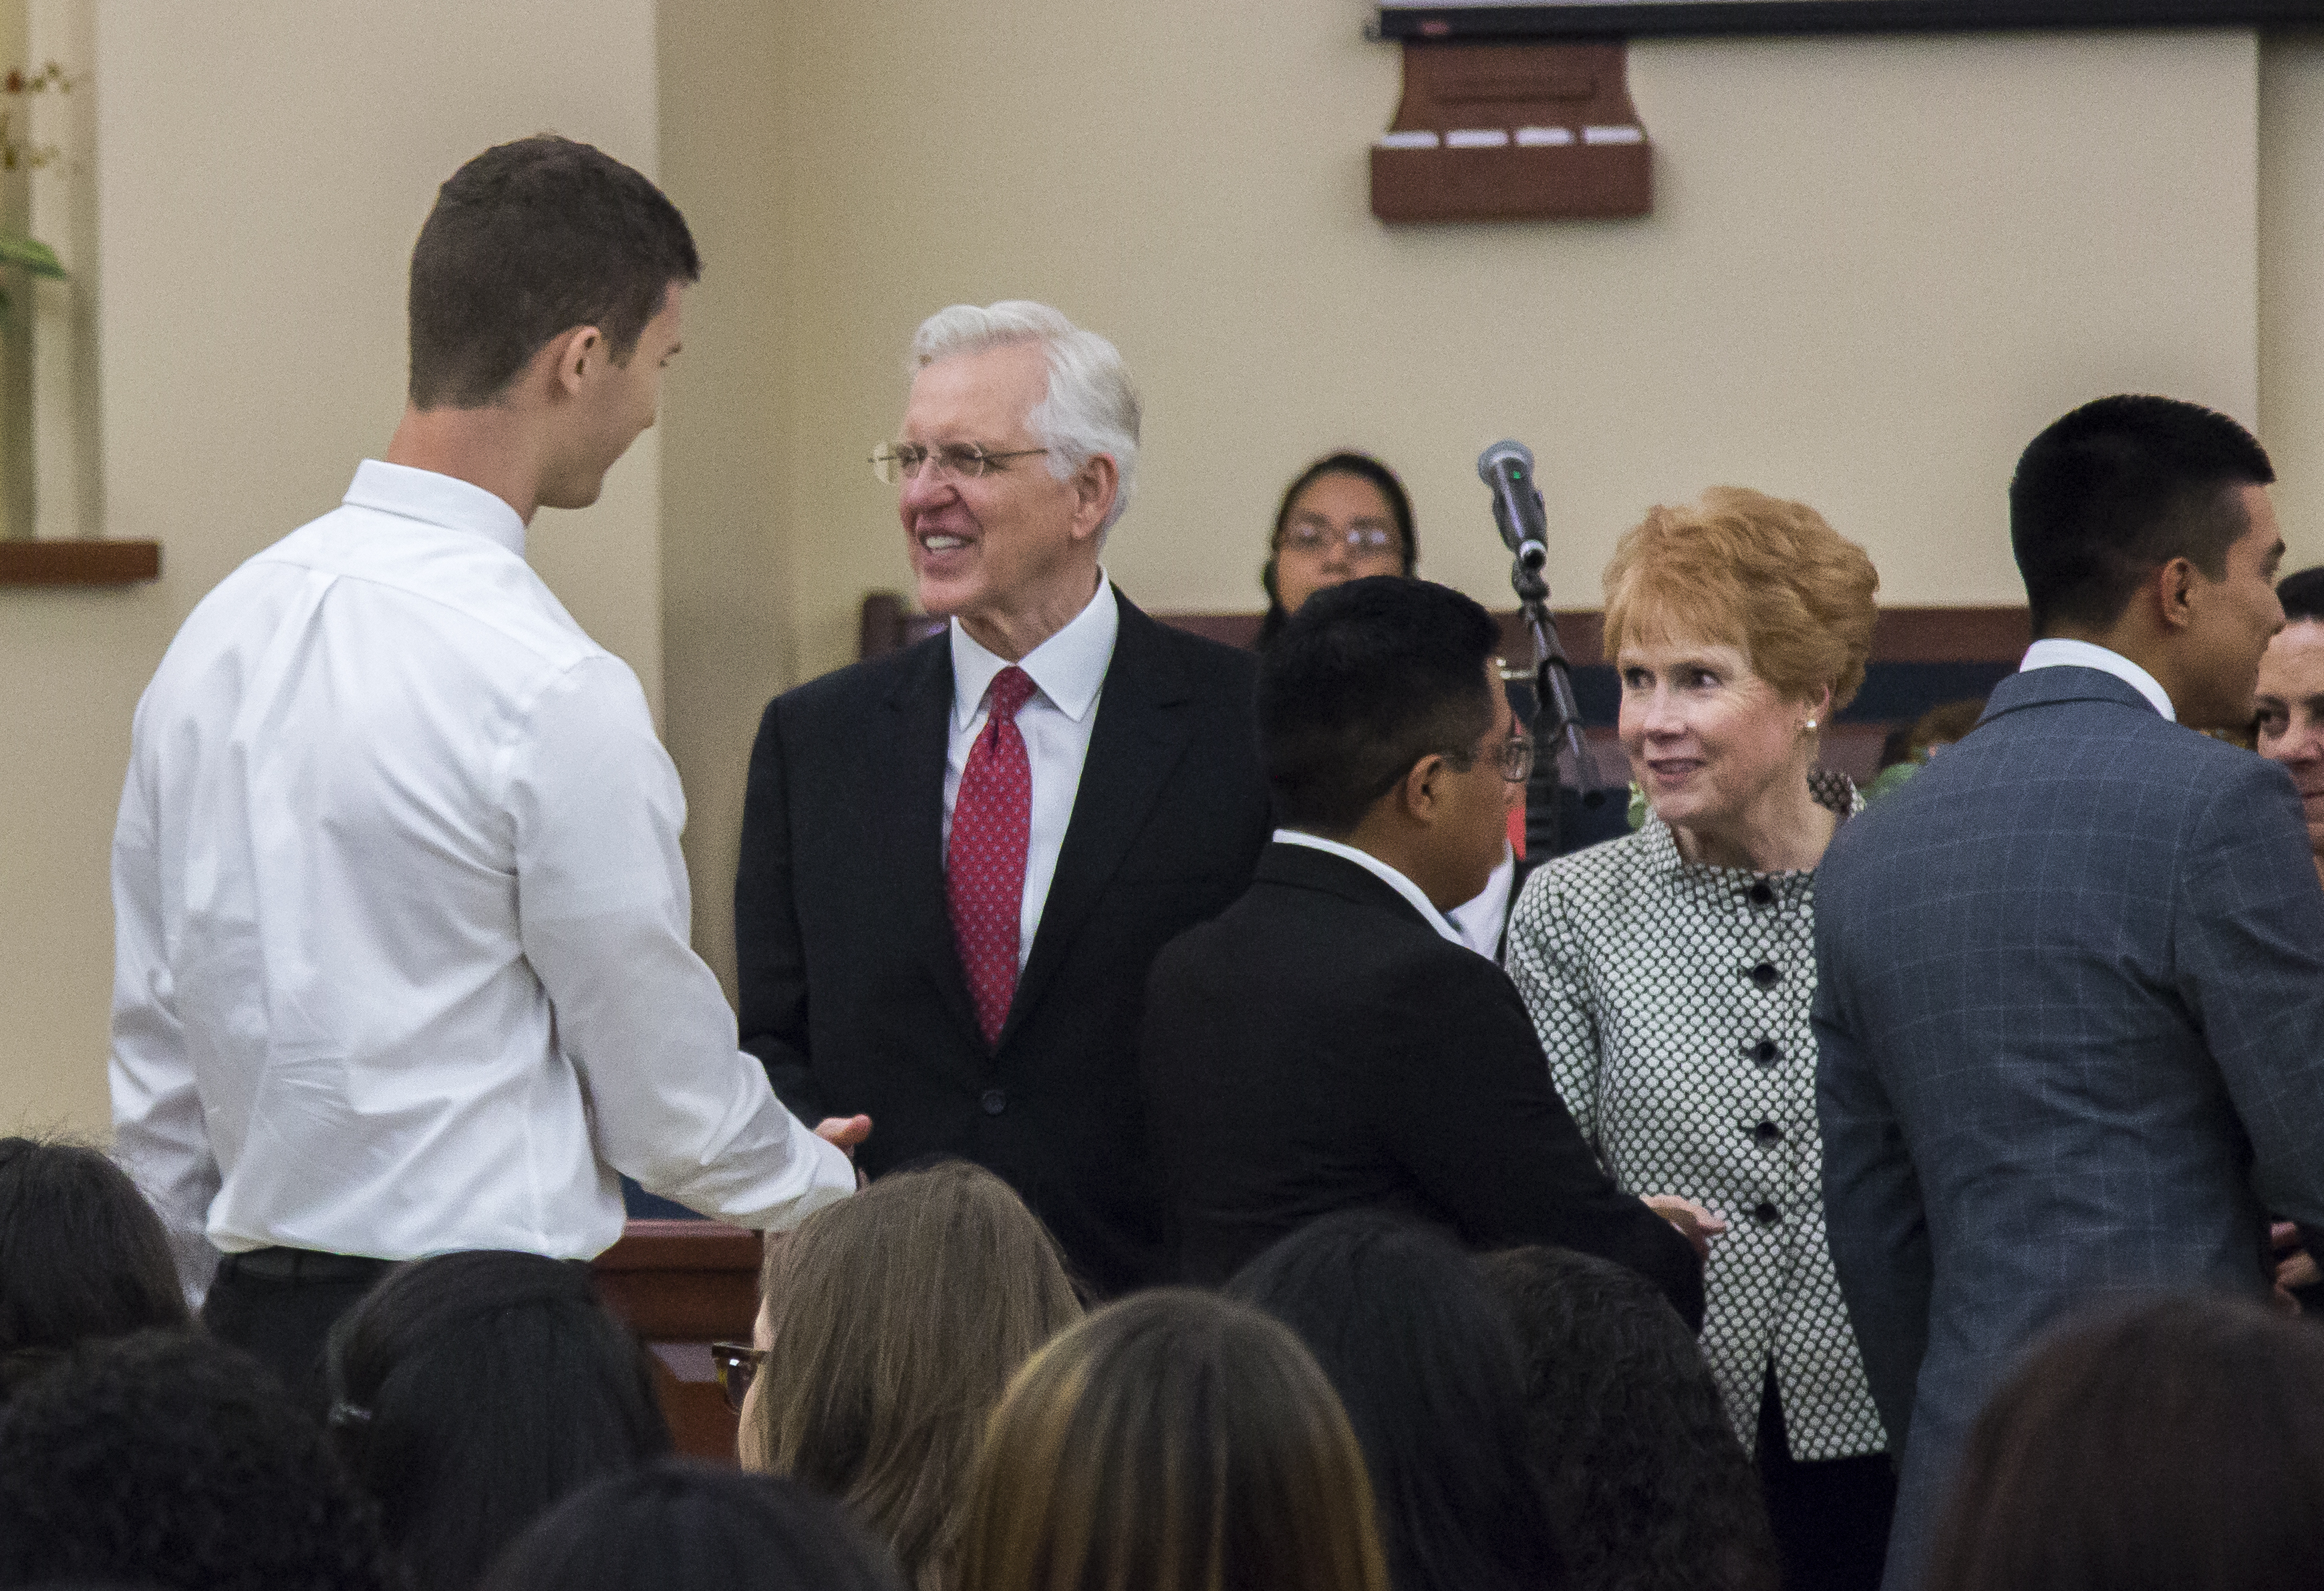 Elder D. Todd Christofferson on Saturday, February 9 at the three-mission meeting held for the three El Salvador missions in San Salvador.